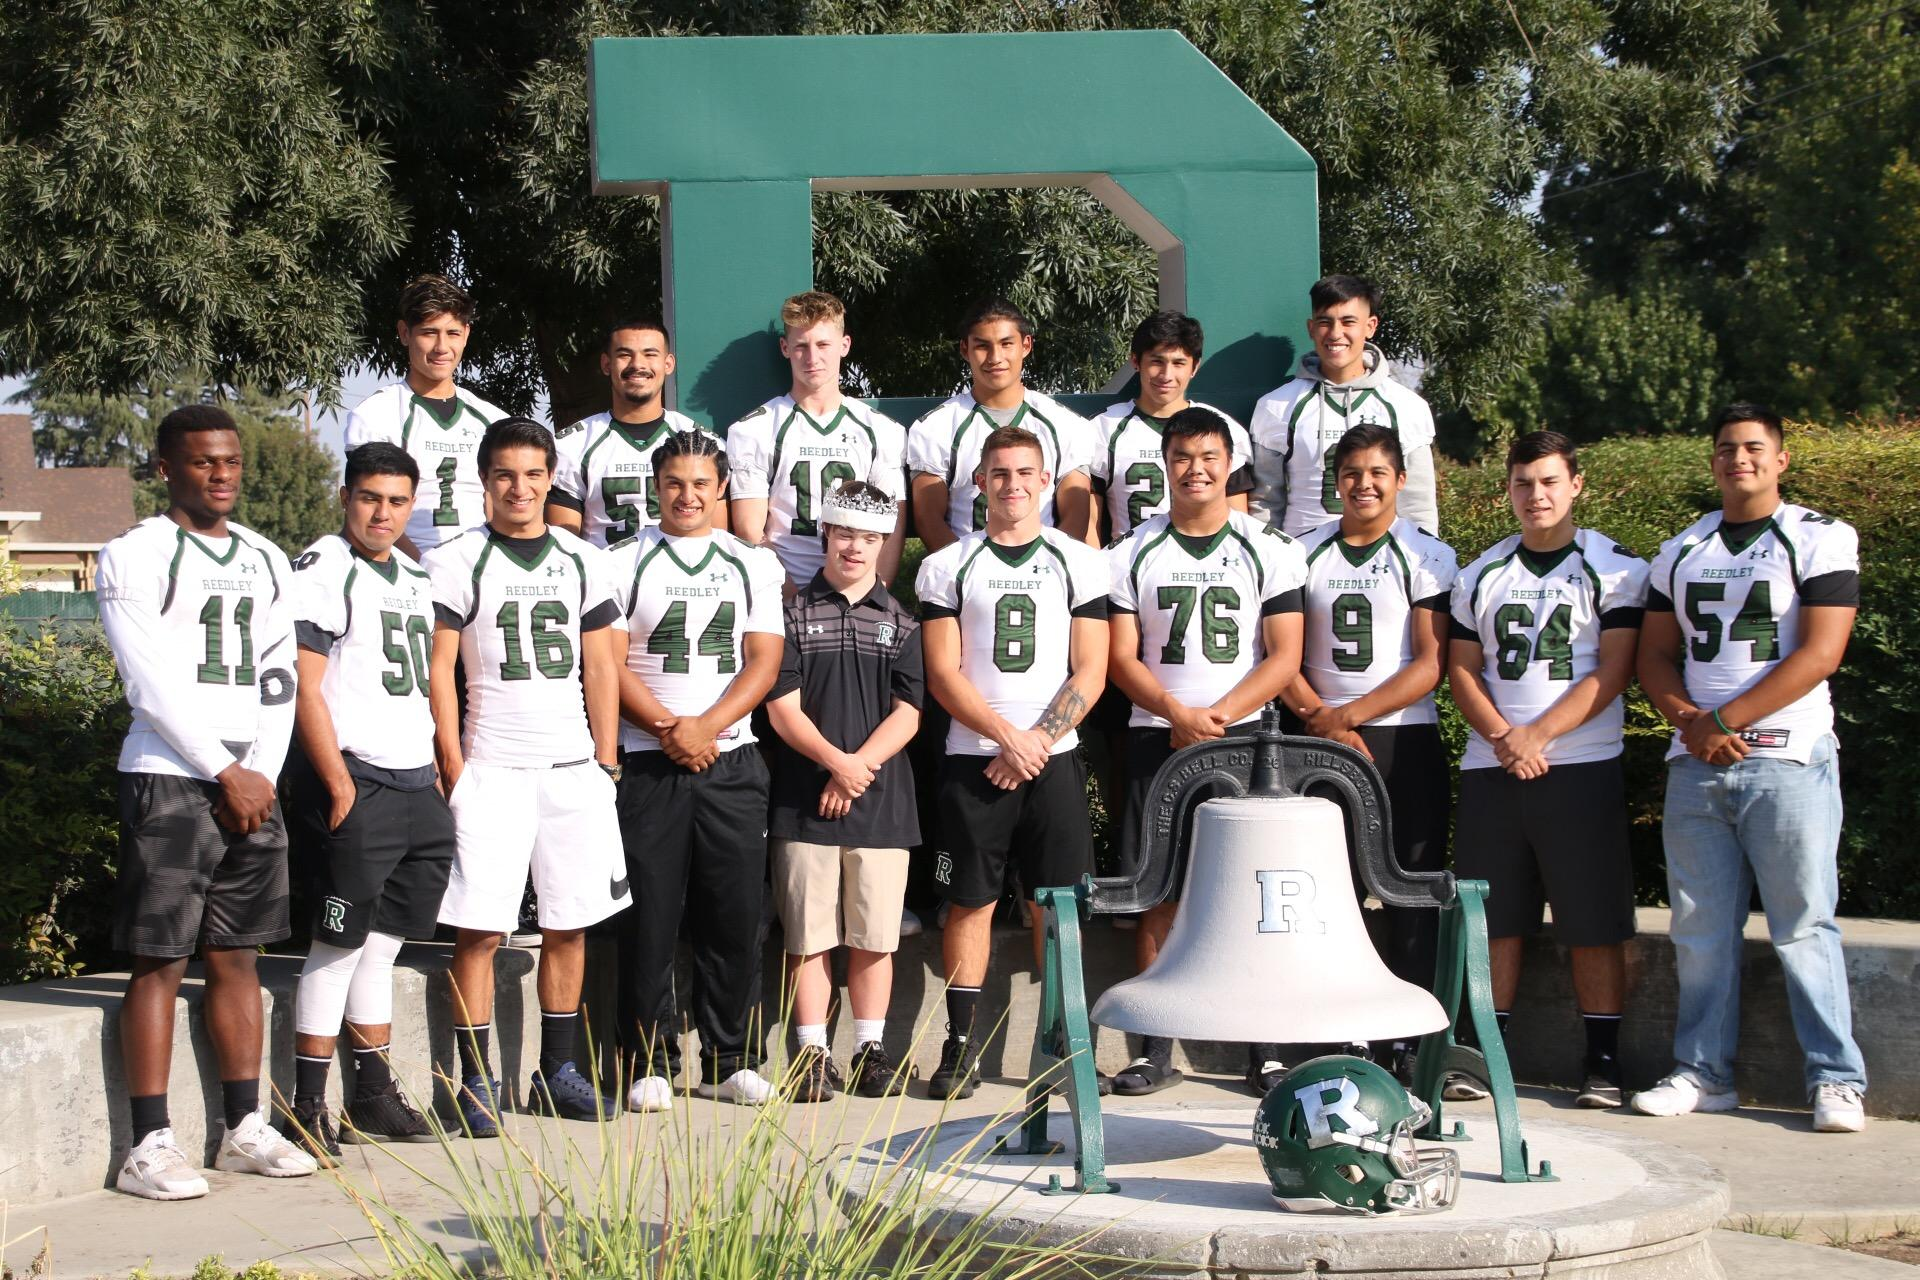 Jack Welsh and the Reedley football team's senior picture.